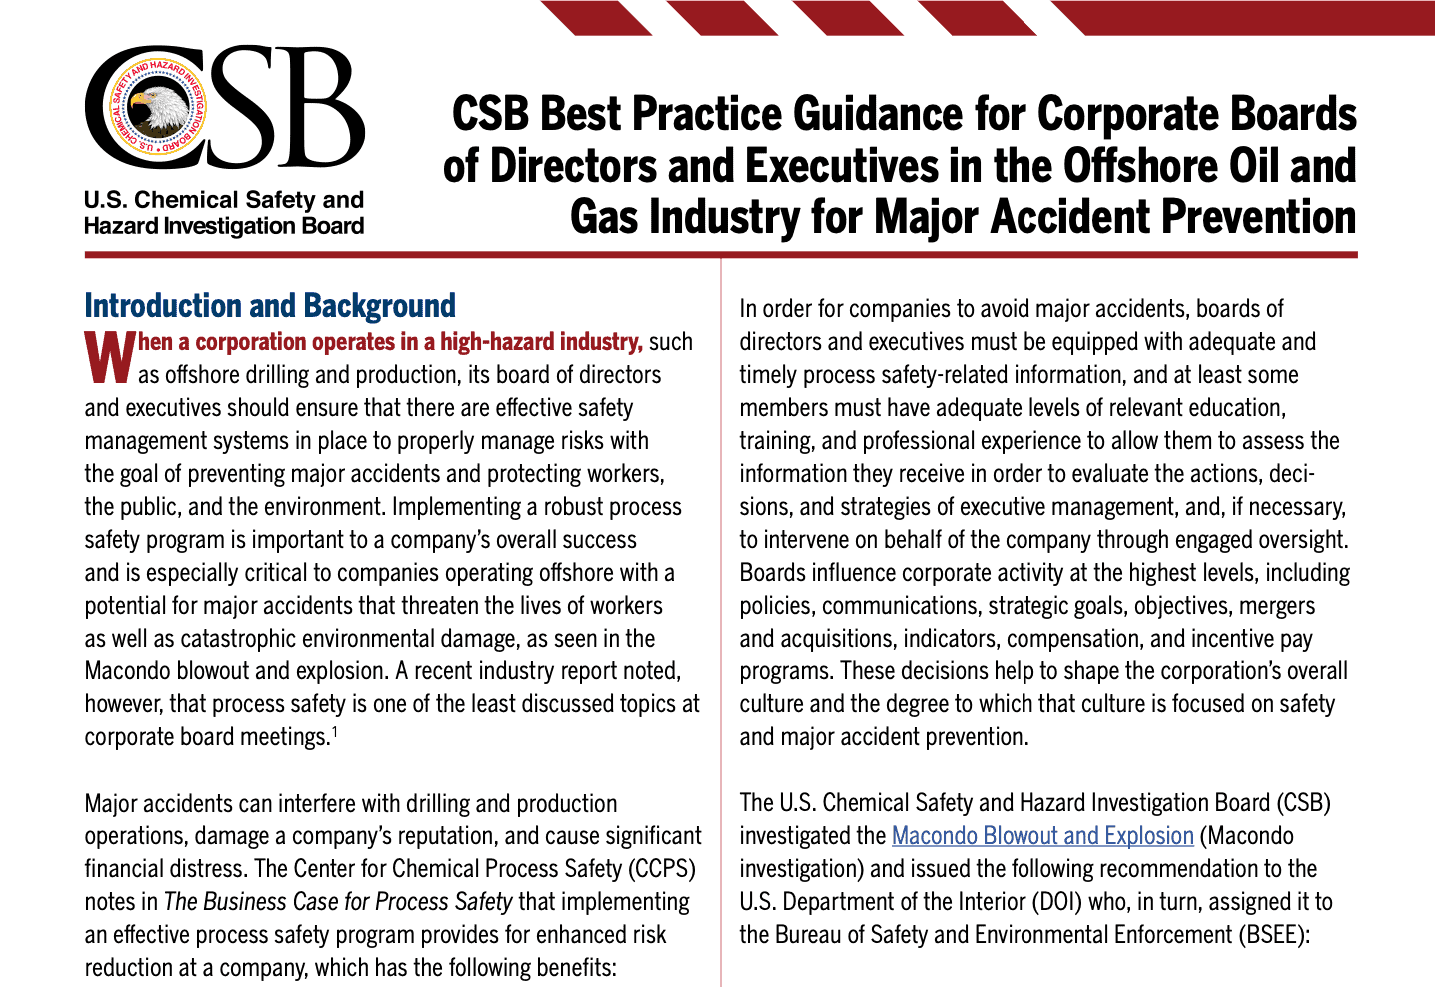 CSB Guidance